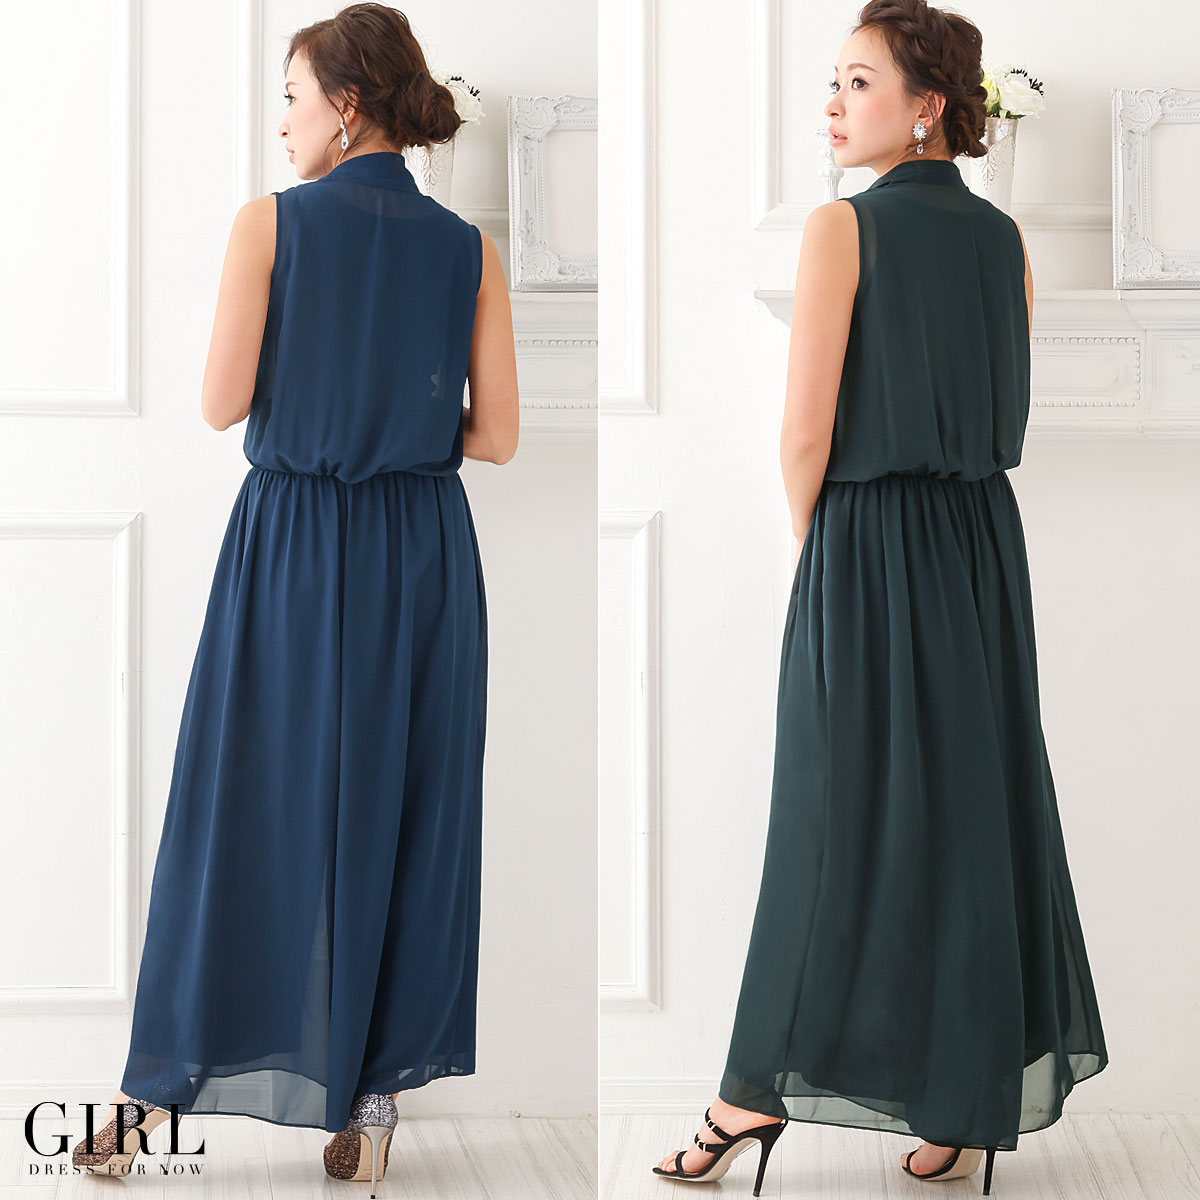 Dress shop GIRL | Rakuten Global Market: Party pants dress wedding ...